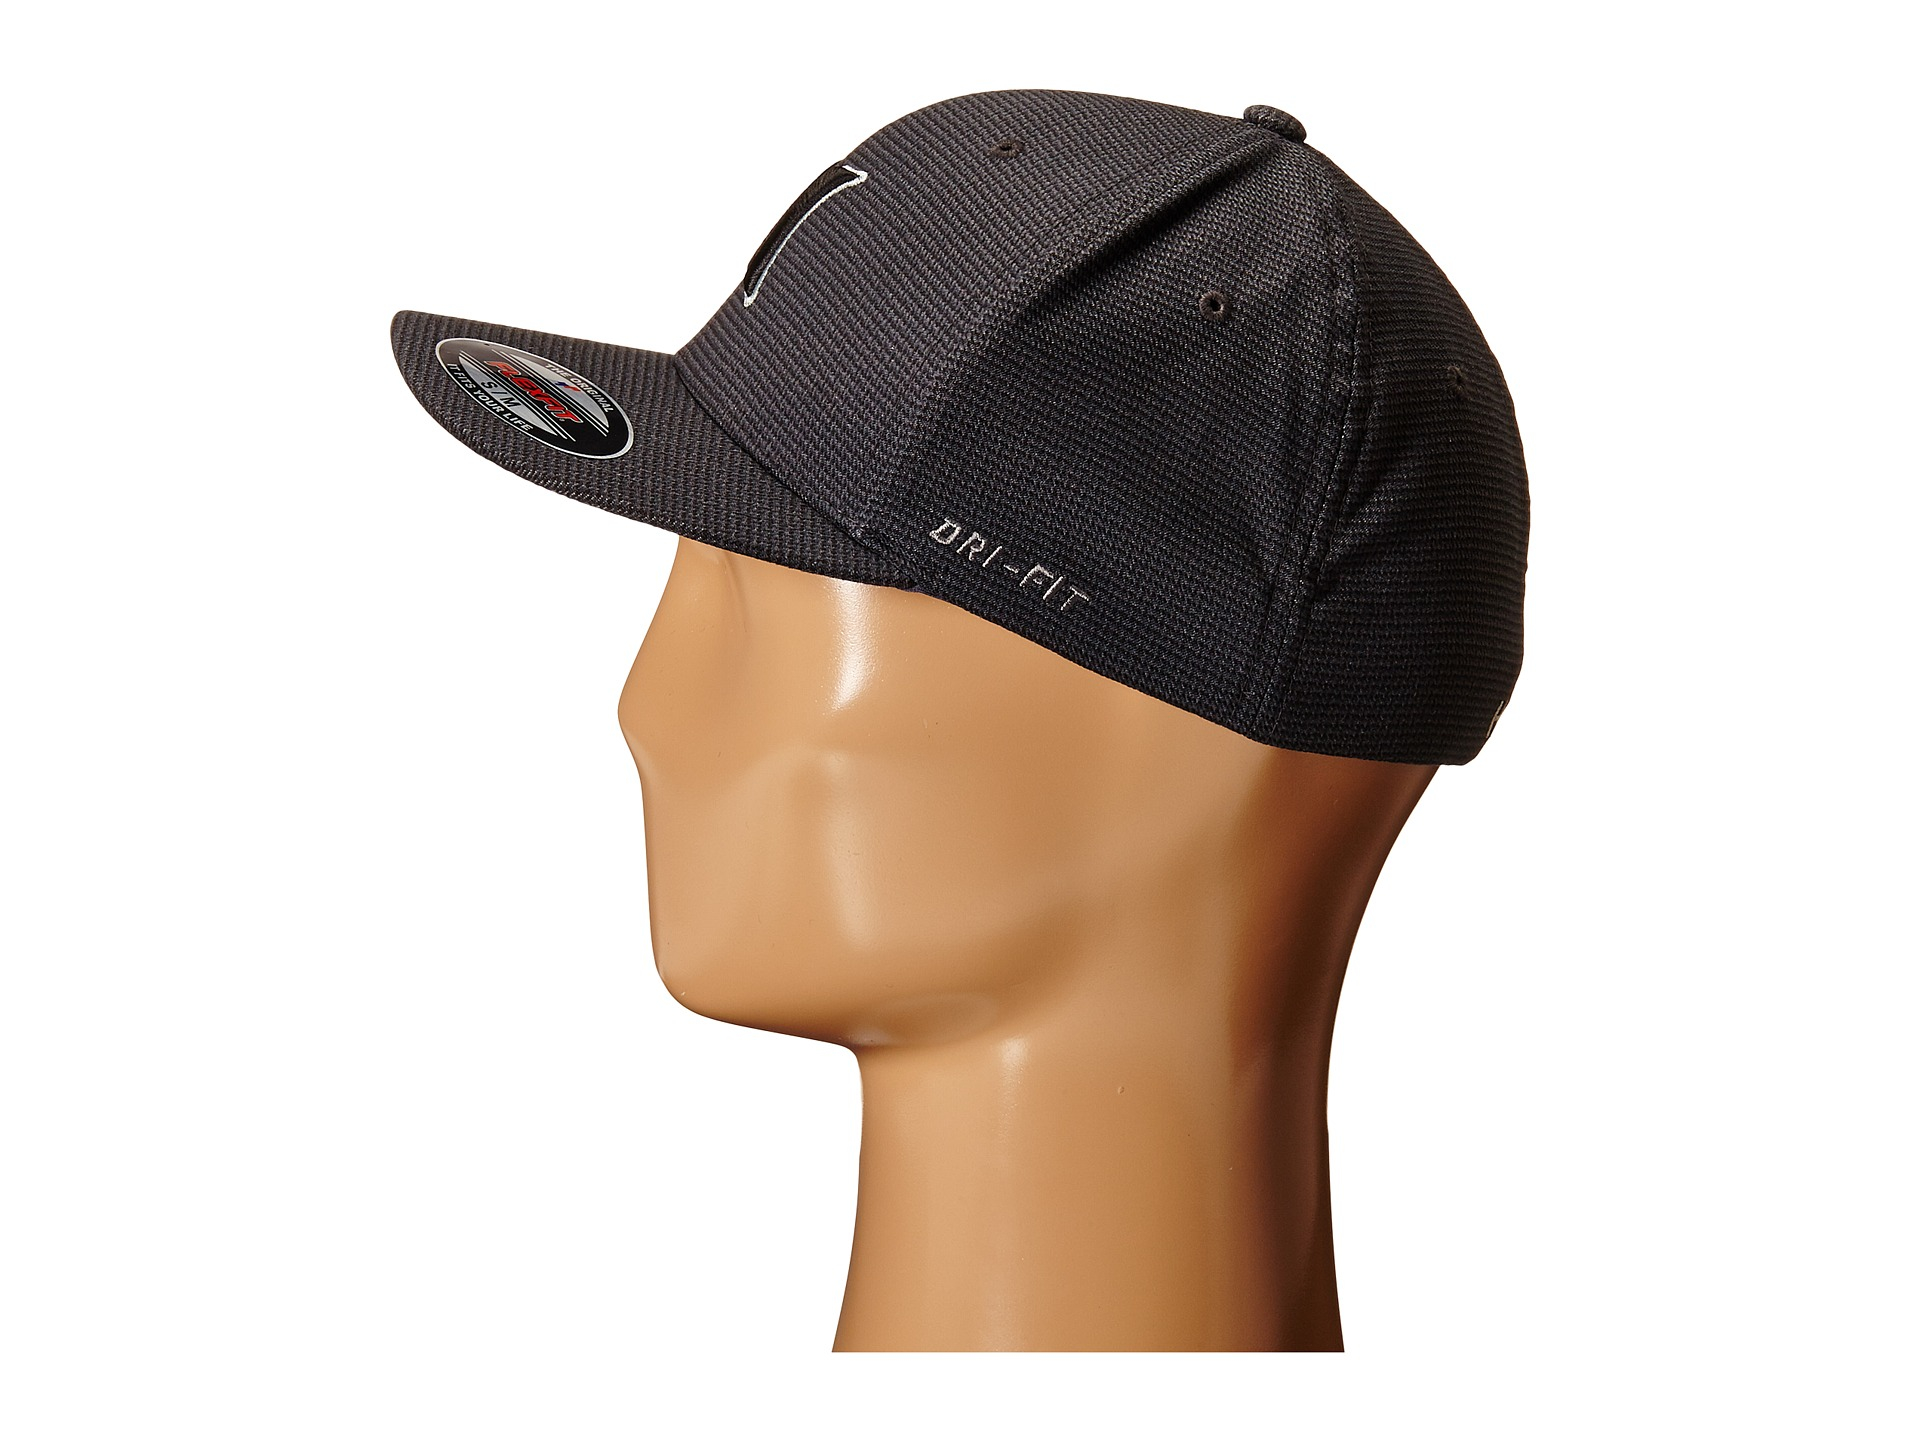 be42f4102c8 ... norway lyst hurley dri fit halyard fitted hat in black for men 84741  231b0